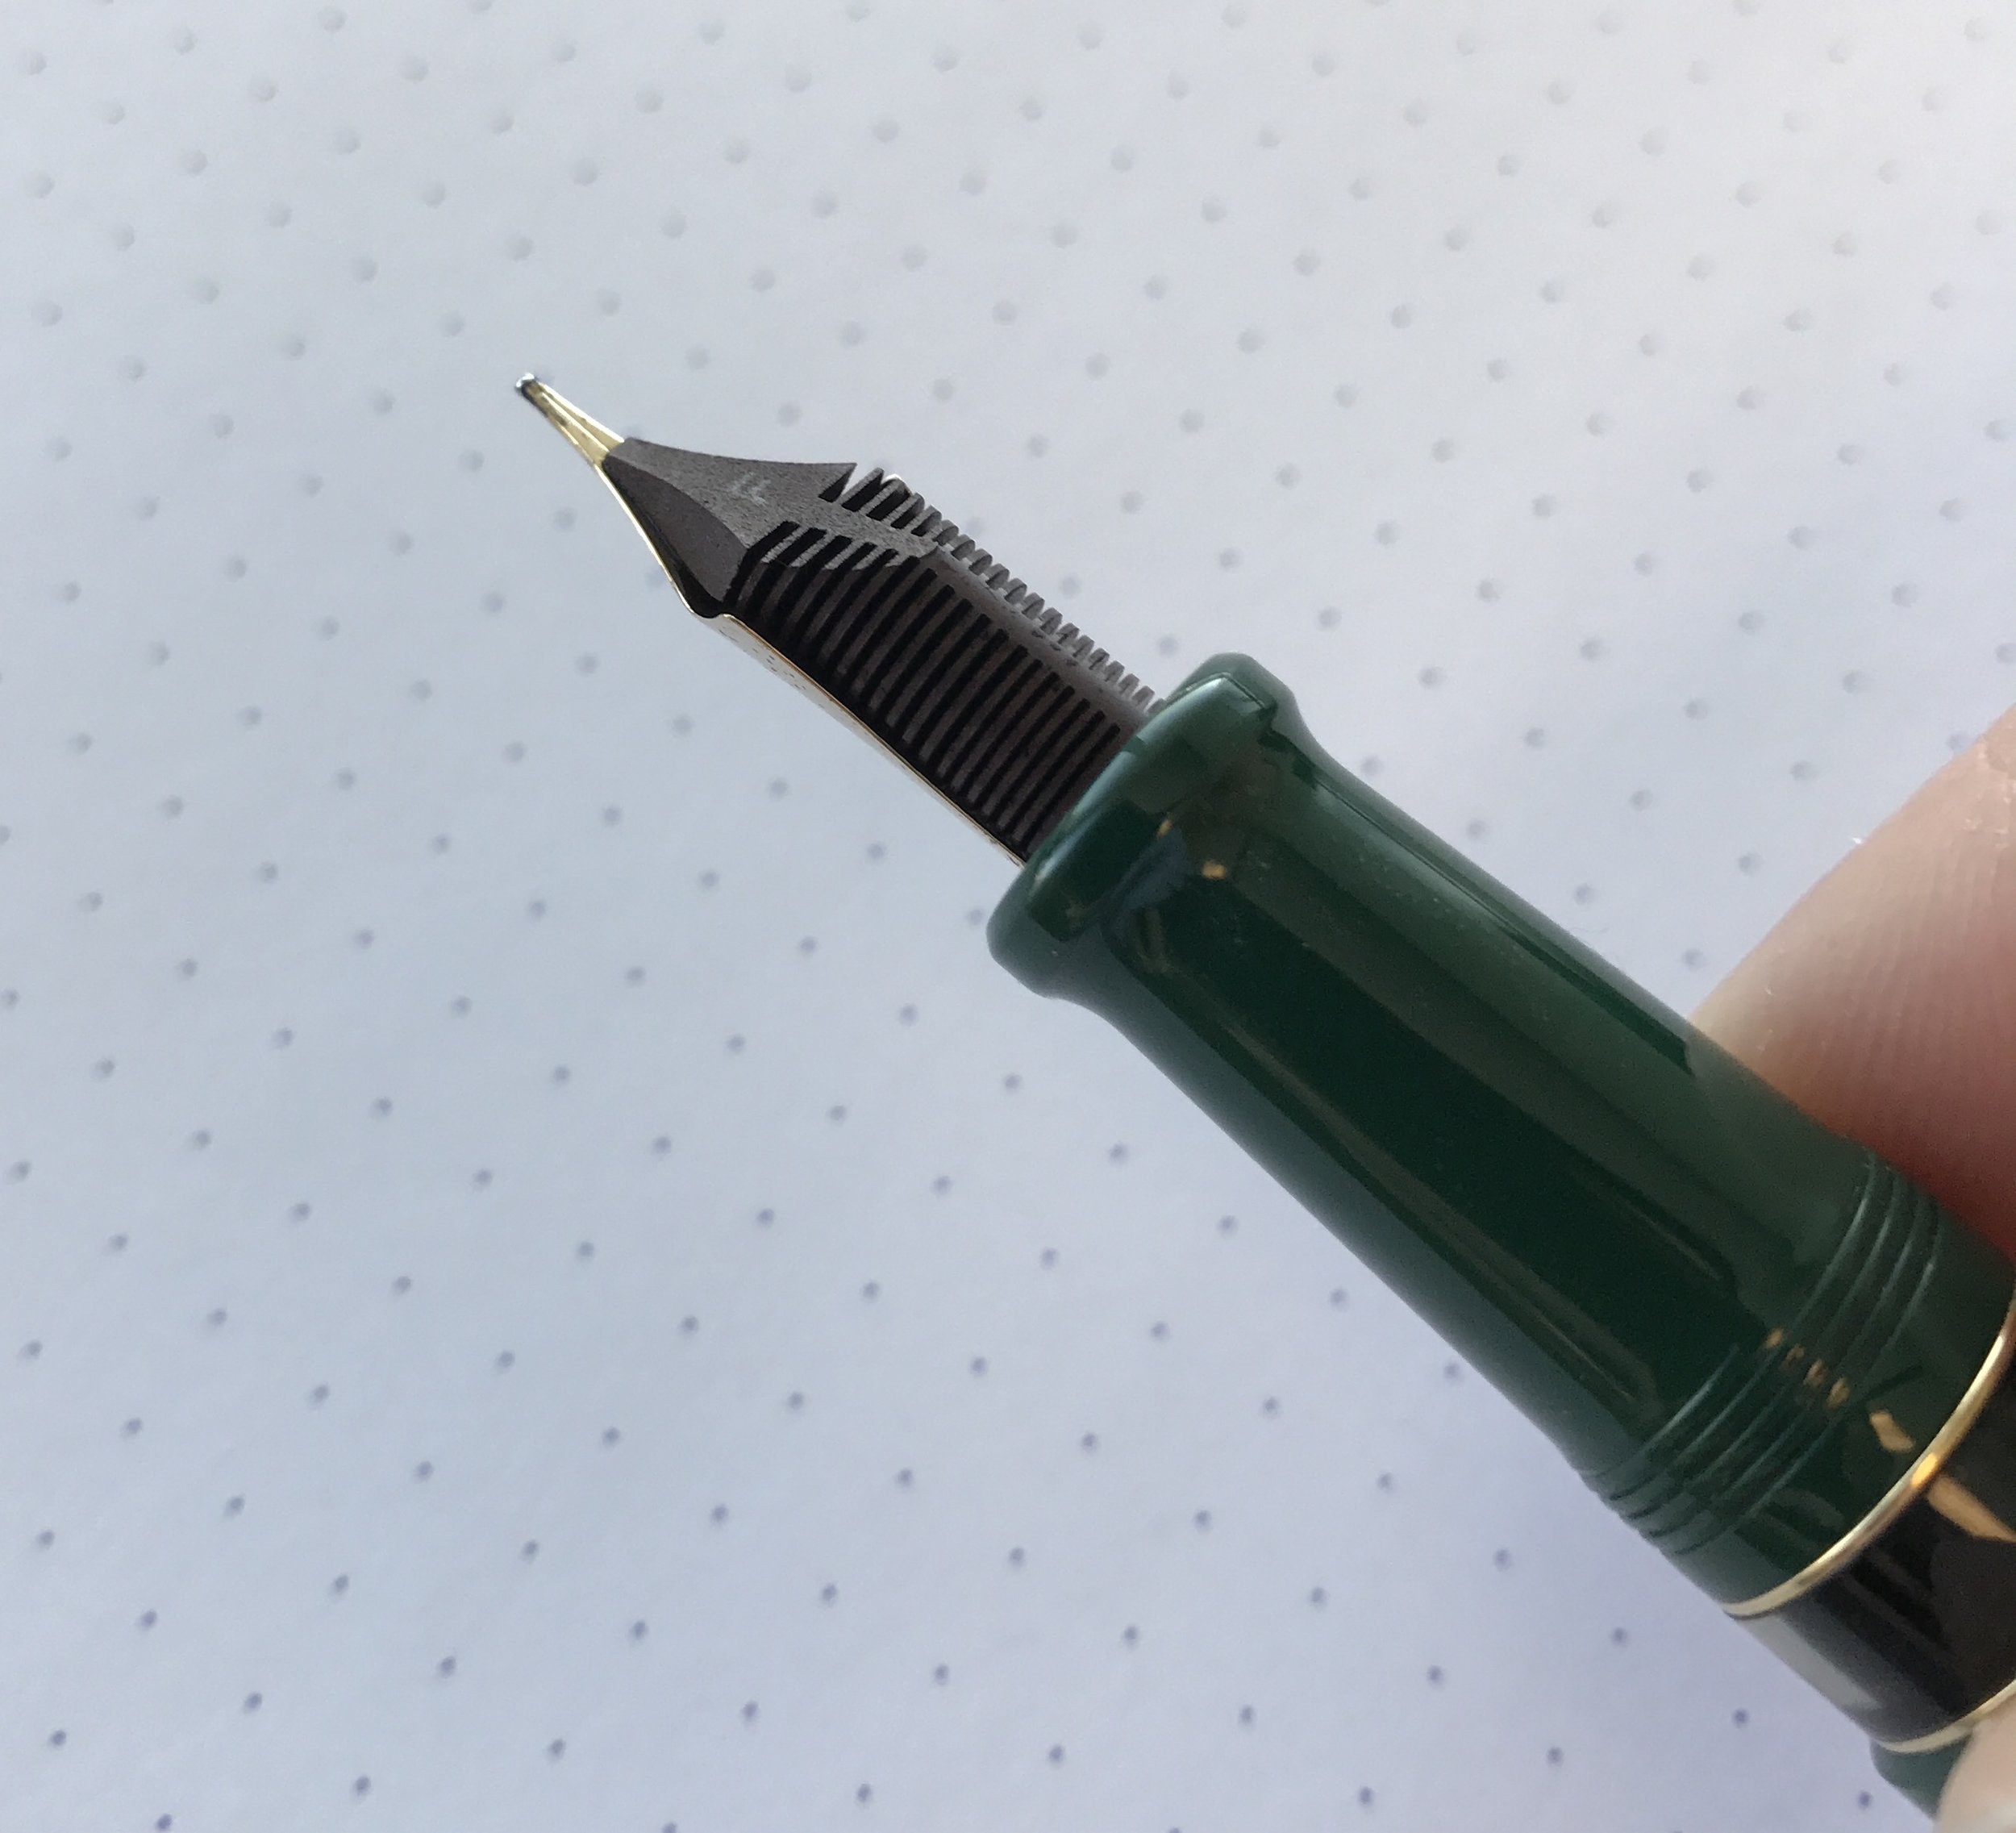 The Aurora 88 flex nib is fitted with an ebonite feed so that the ink flow keeps up with the nib. The 88 also has a nice big ink window so you can see when you need to refill.